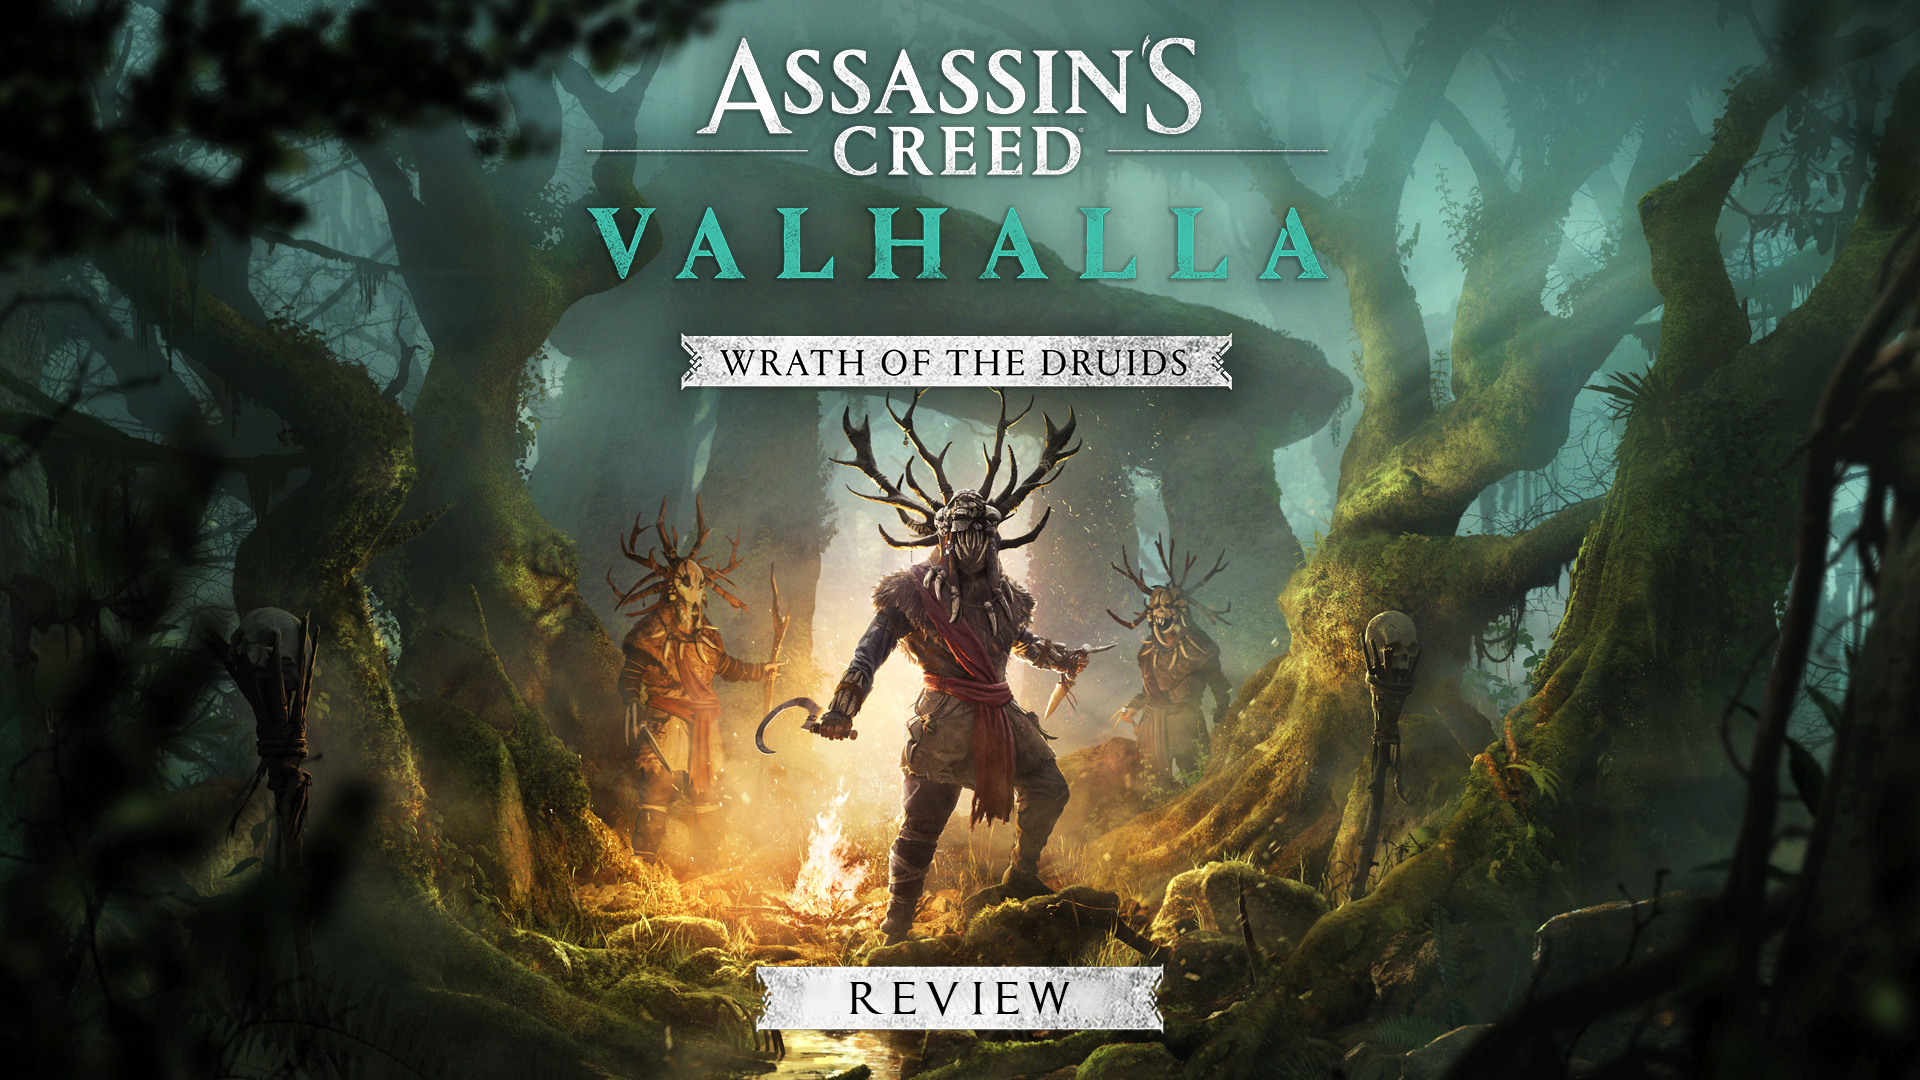 Assassin's Creed Valhalla - Wrath of the Druids